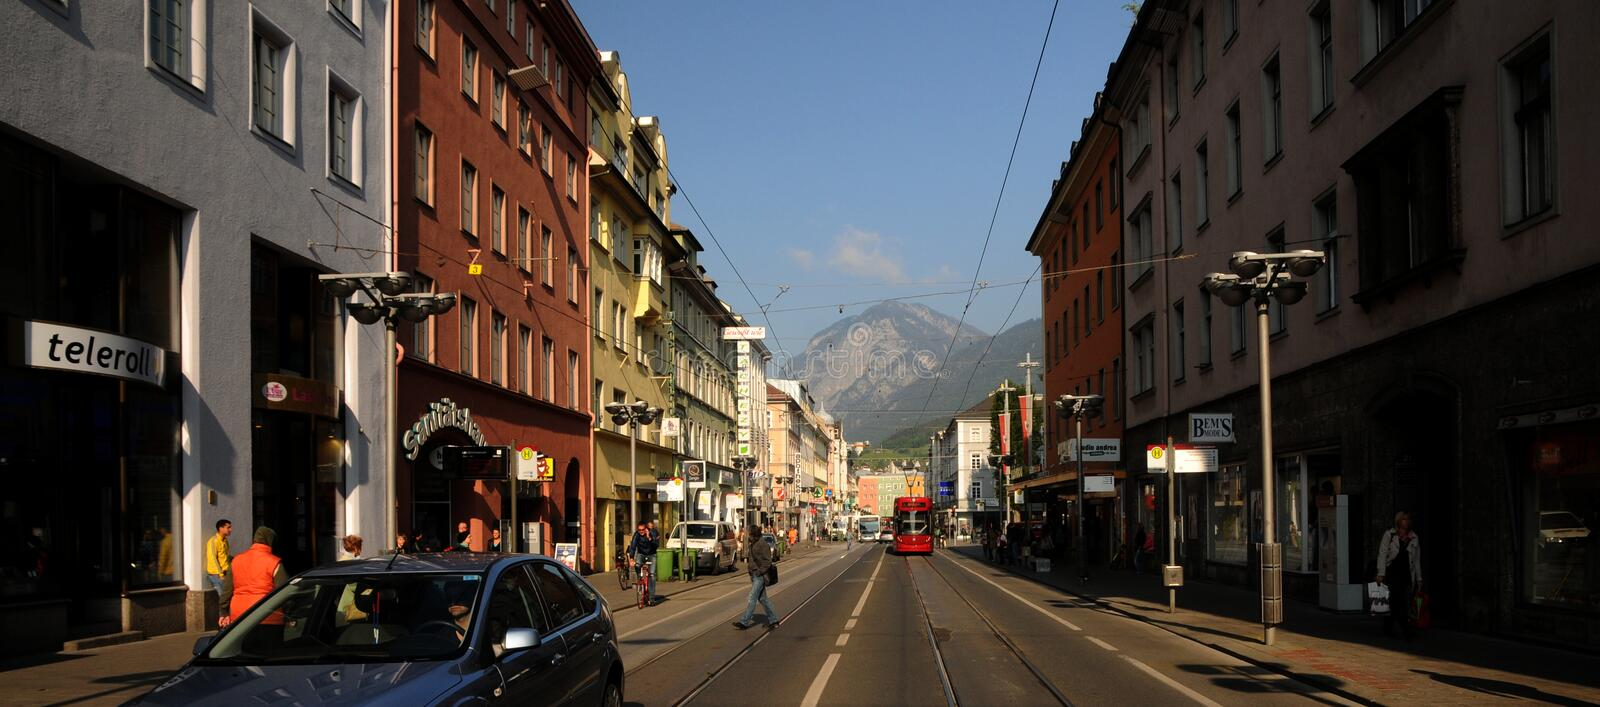 In The Streets Of Innsbruck Editorial Photography